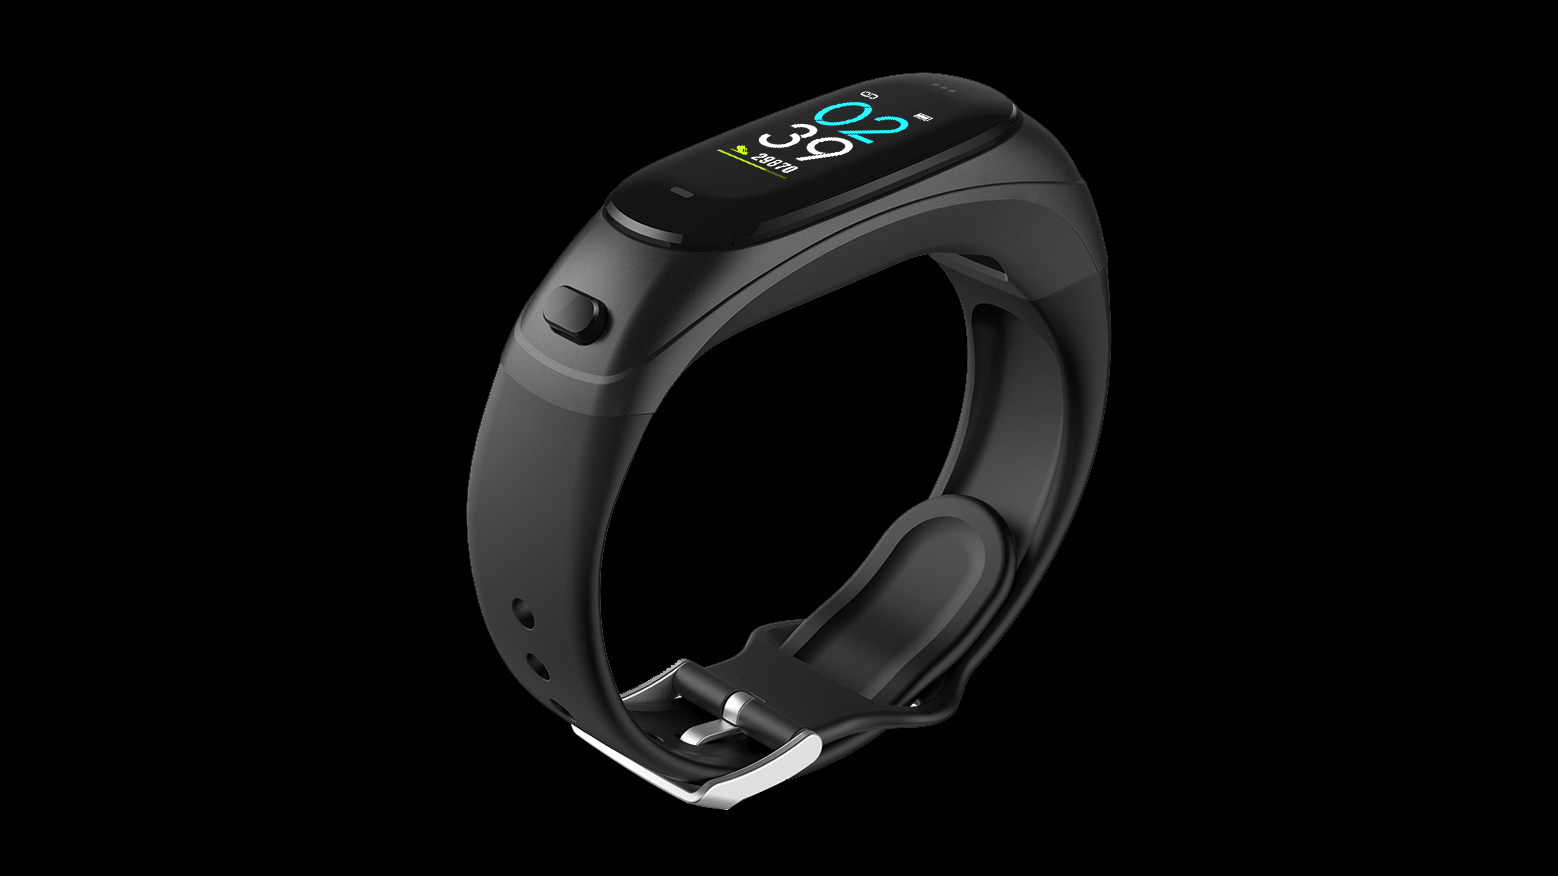 Smart Bracelets Fitness Tracker Blood Pressure voice call bluetooth wristband with wireless earbuds V08 pro